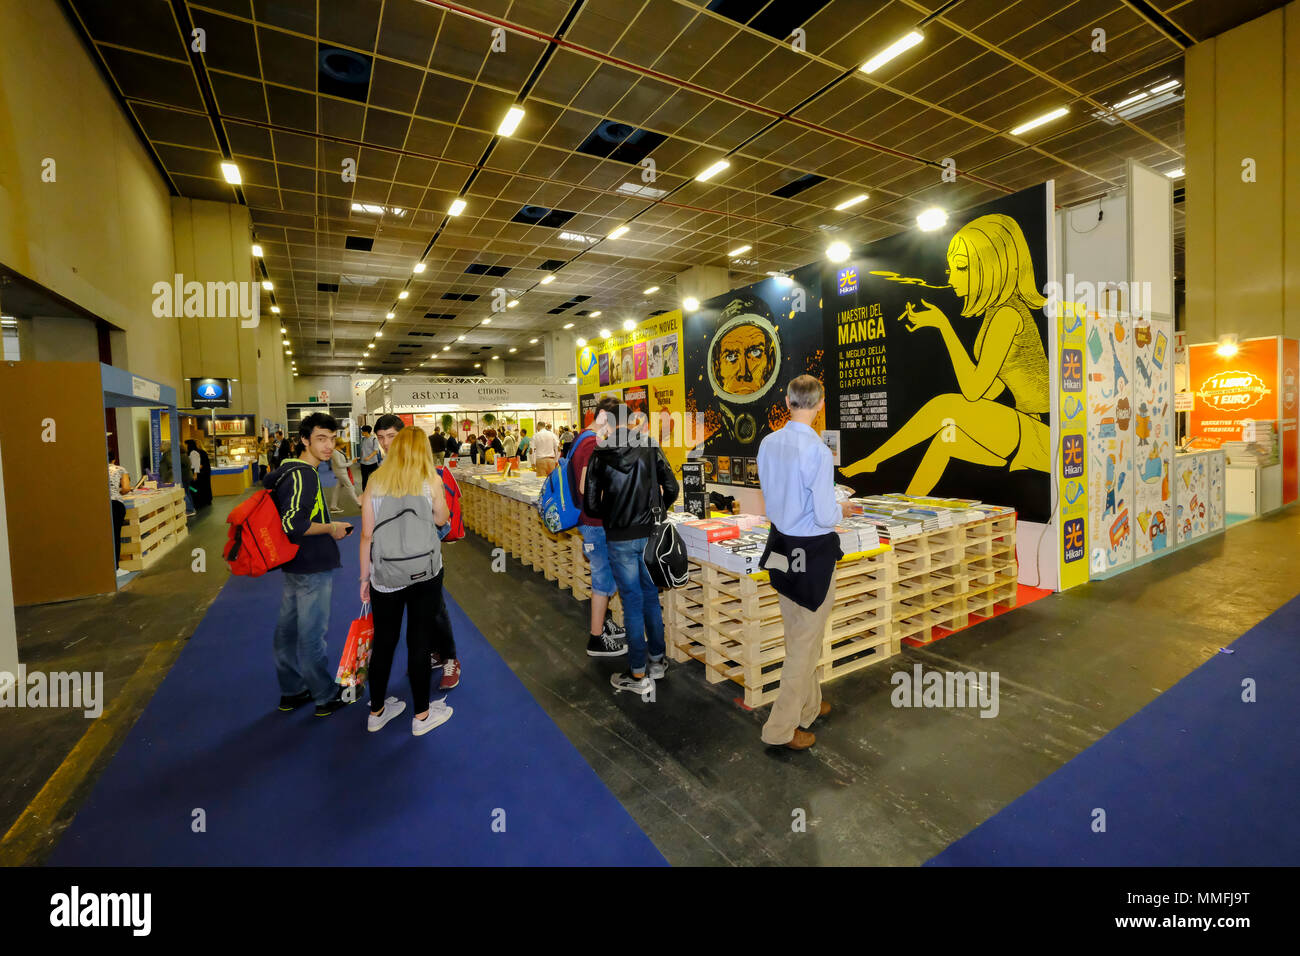 Turin, Piedmont, Italy, 10th May, 2018. International Book fair 2018,first day.Hikari publisher's stand Credit: RENATO VALTERZA/Alamy Live News - Stock Image